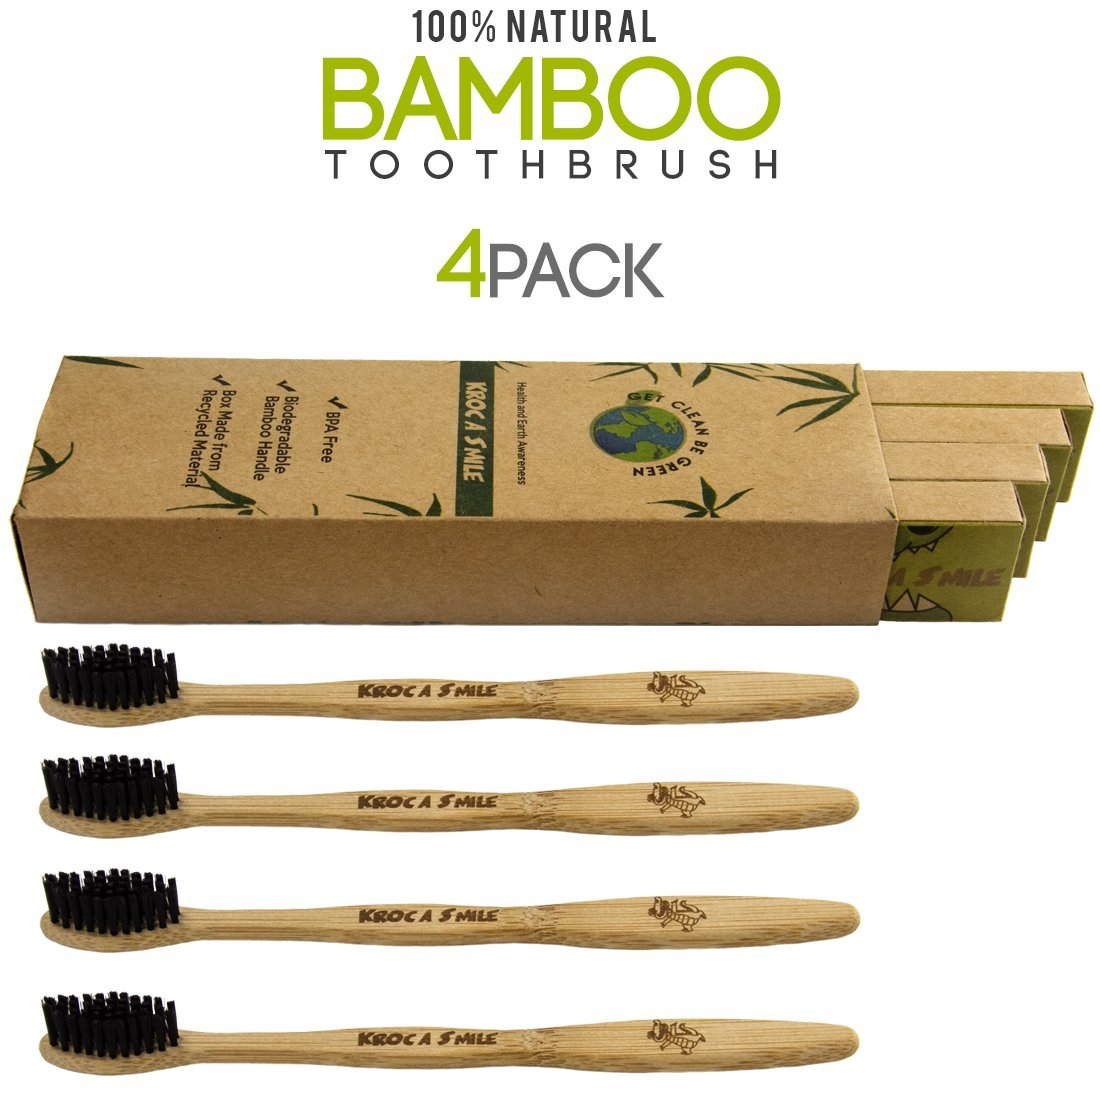 Eco-friendly Natural Bamboo Toothbrush 100% Organic and Biodegradable, Medium Bristle BPA Free Charcoal Infused Bristles for Kids and Adults- 4 pack Black